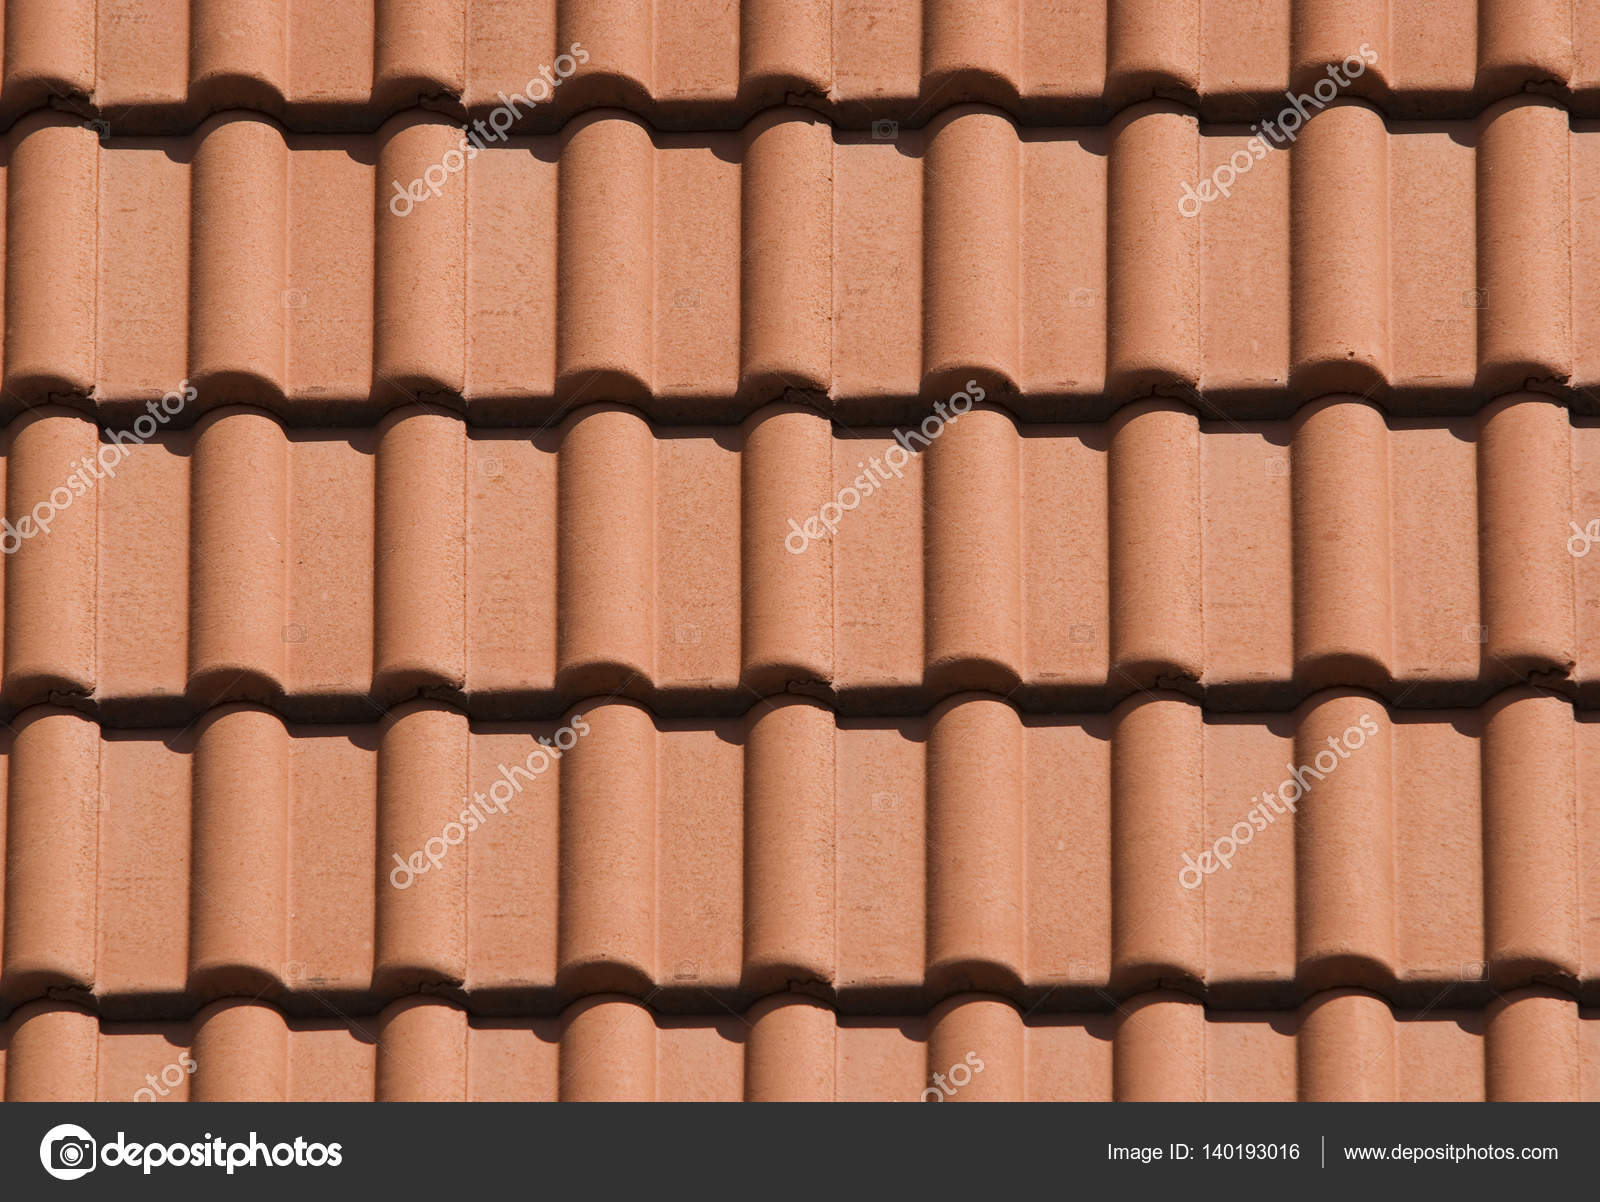 Detail of rooftop with red ceramic tiles stock photo aaron007 detail of rooftop with red ceramic tiles photo by aaron007 dailygadgetfo Choice Image